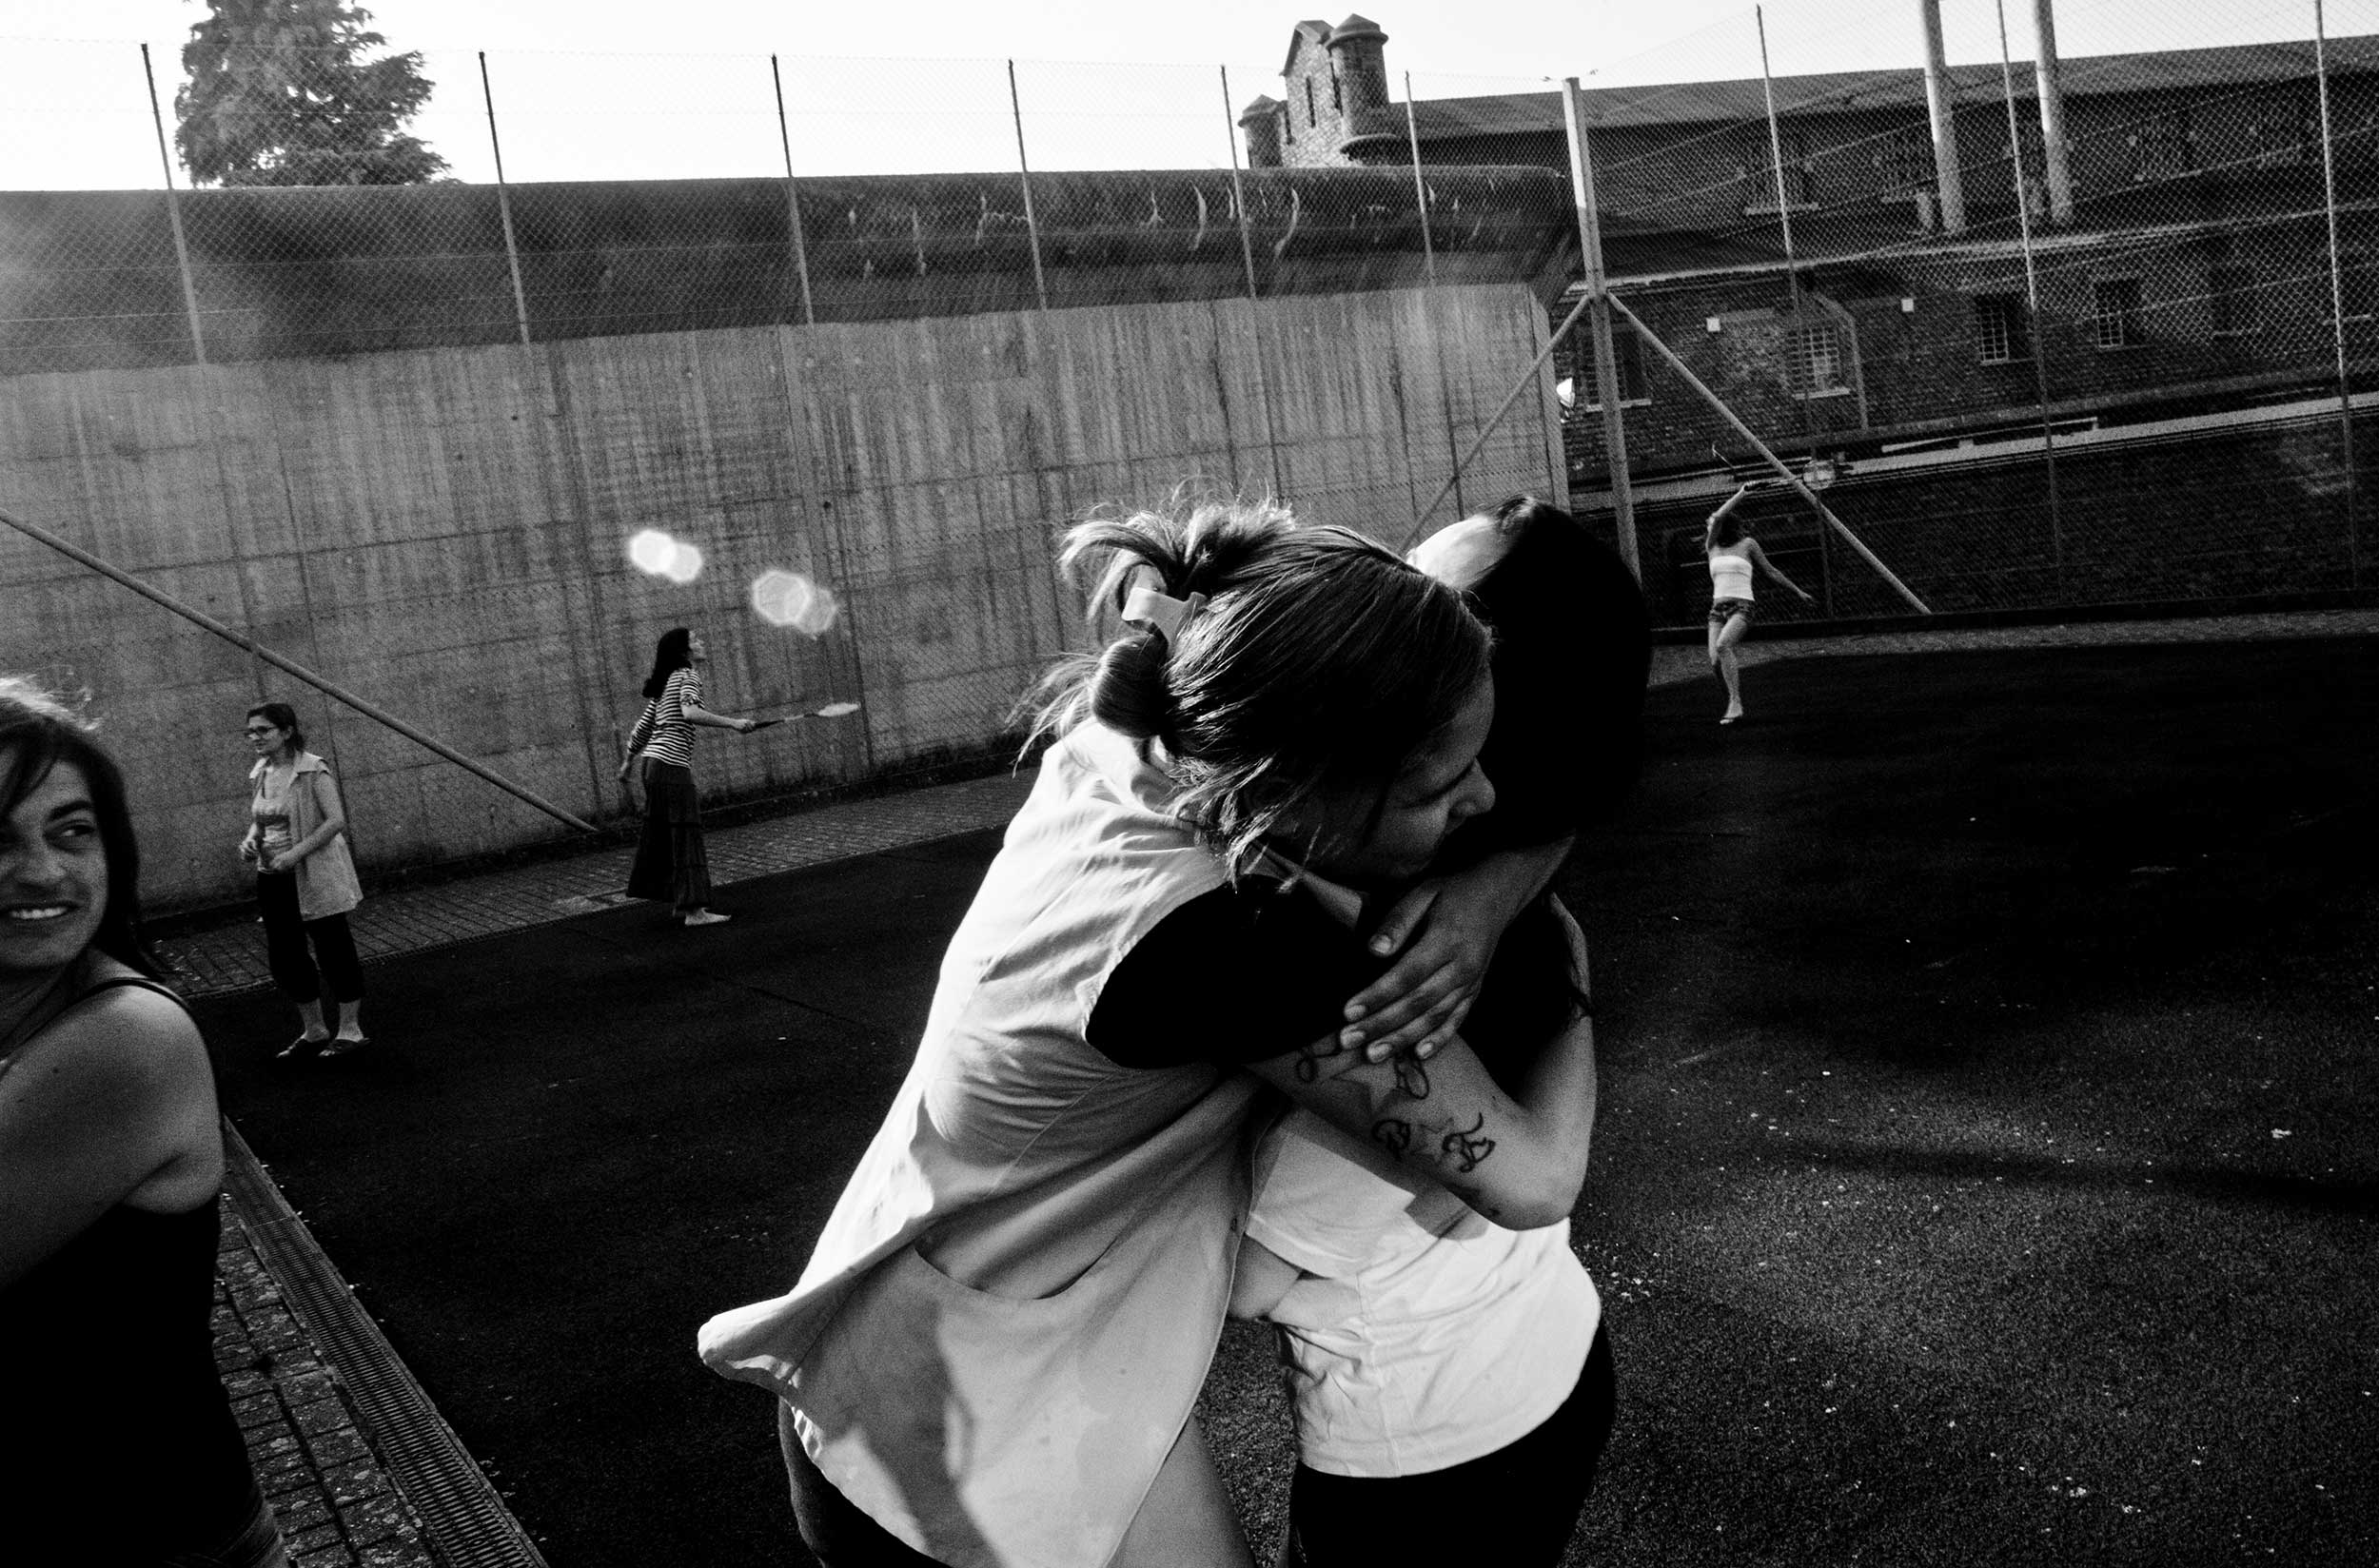 Two female prisoners hug during a badminton game in the courtyard of the prison for women in Berkendaele, Brussels, Belgium. July 2012.